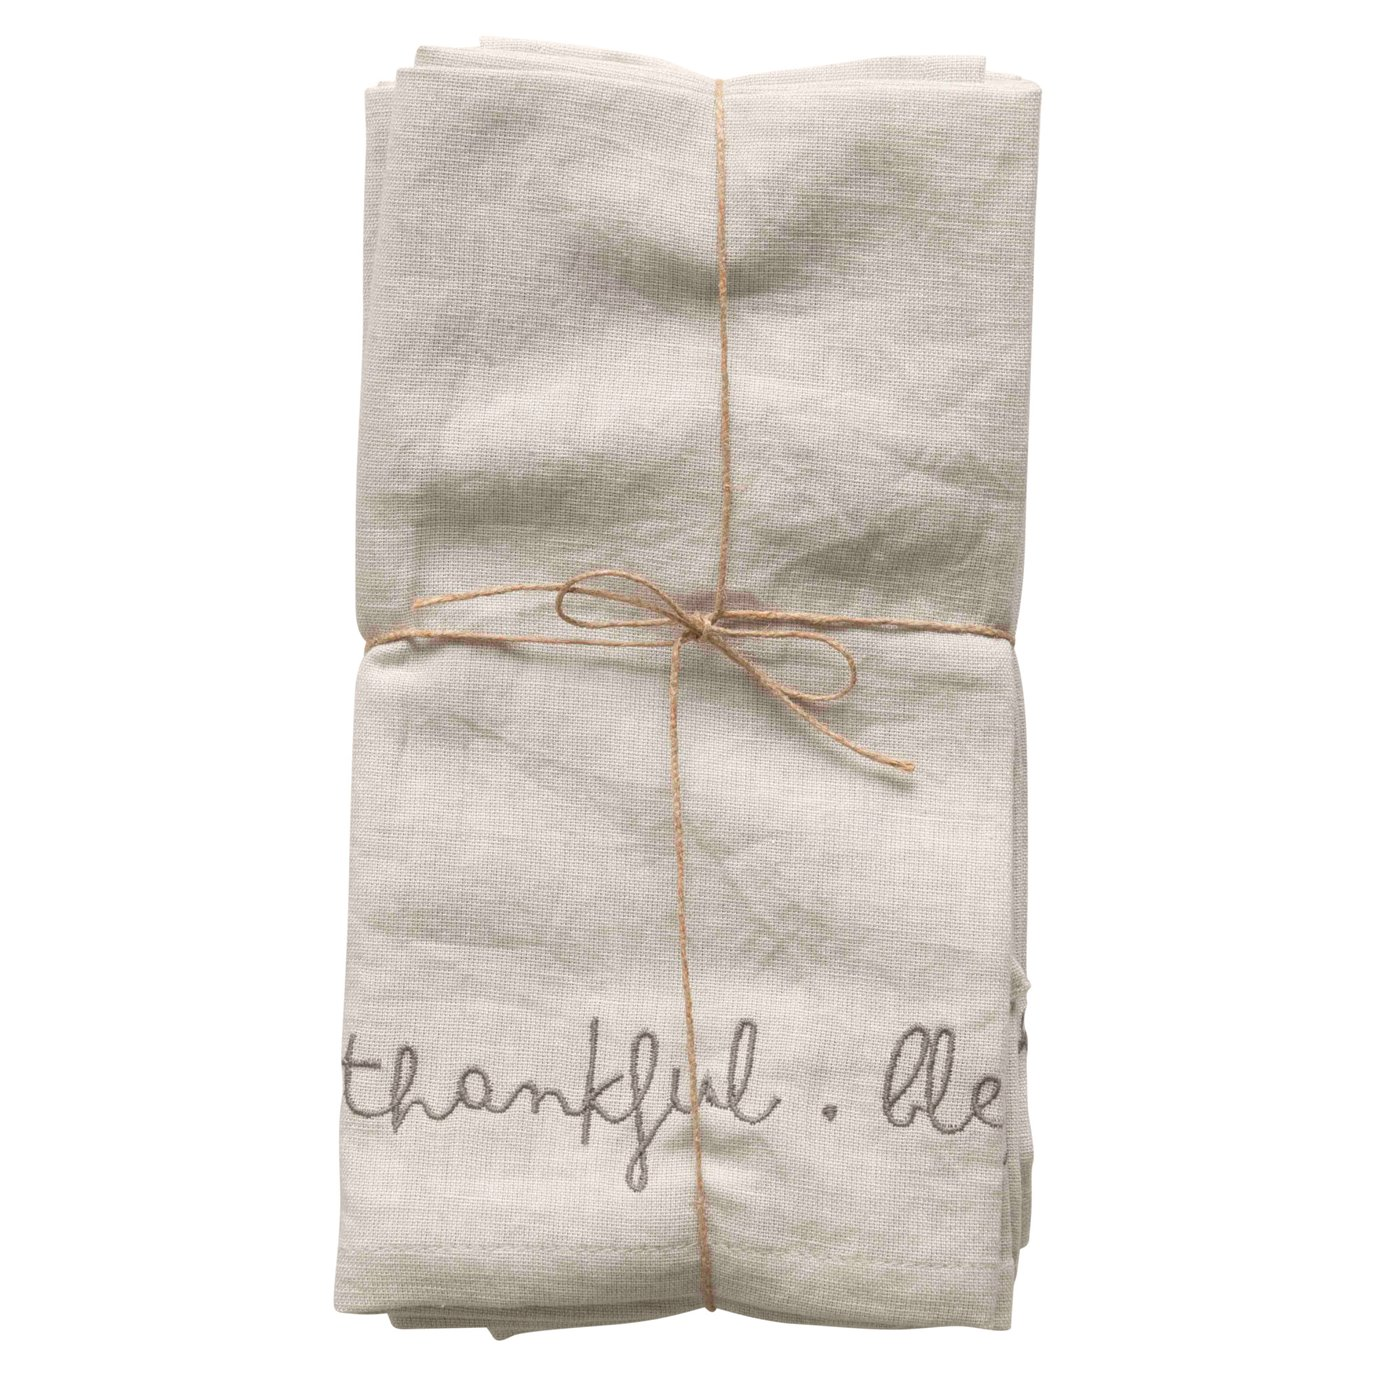 """18"""" Square Embroidered """"Grateful, Thankful, Blessed"""" Cotton/Linen Woven Napkins (Set of 4 Pieces)"""